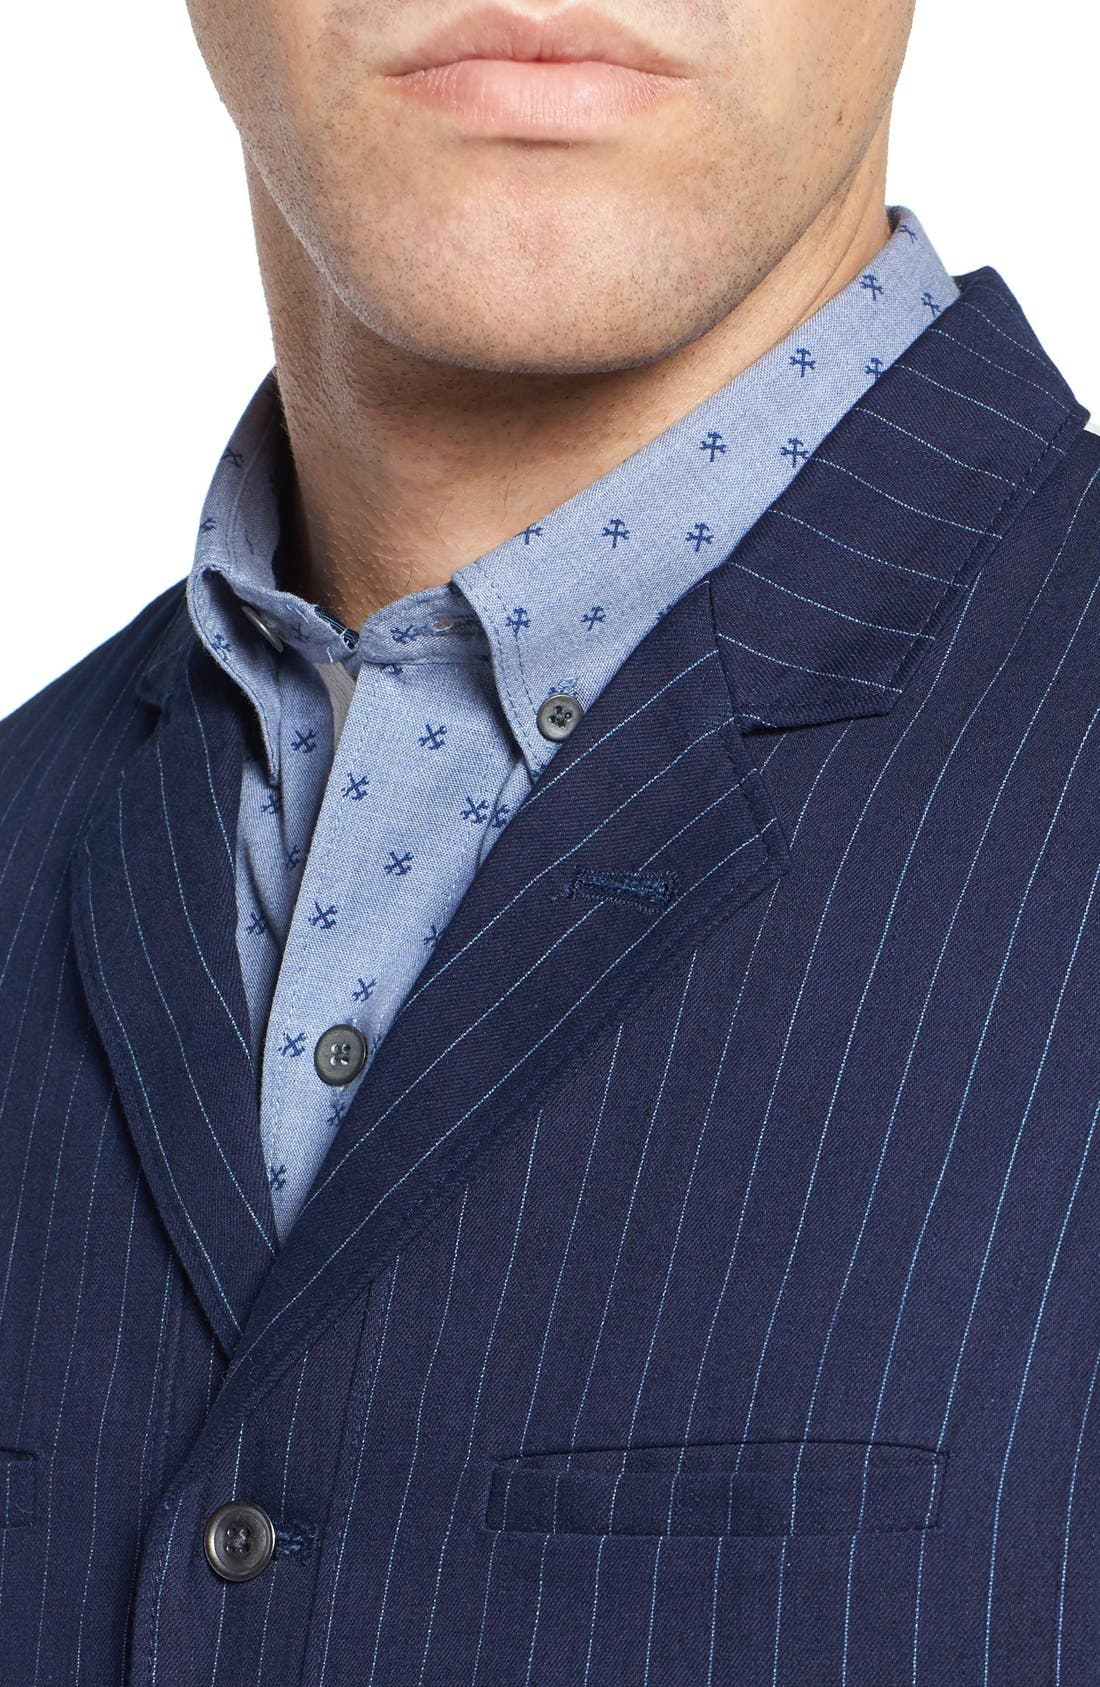 Windsor Pinstripe Cotton Twill Vest,                             Alternate thumbnail 4, color,                             Navy